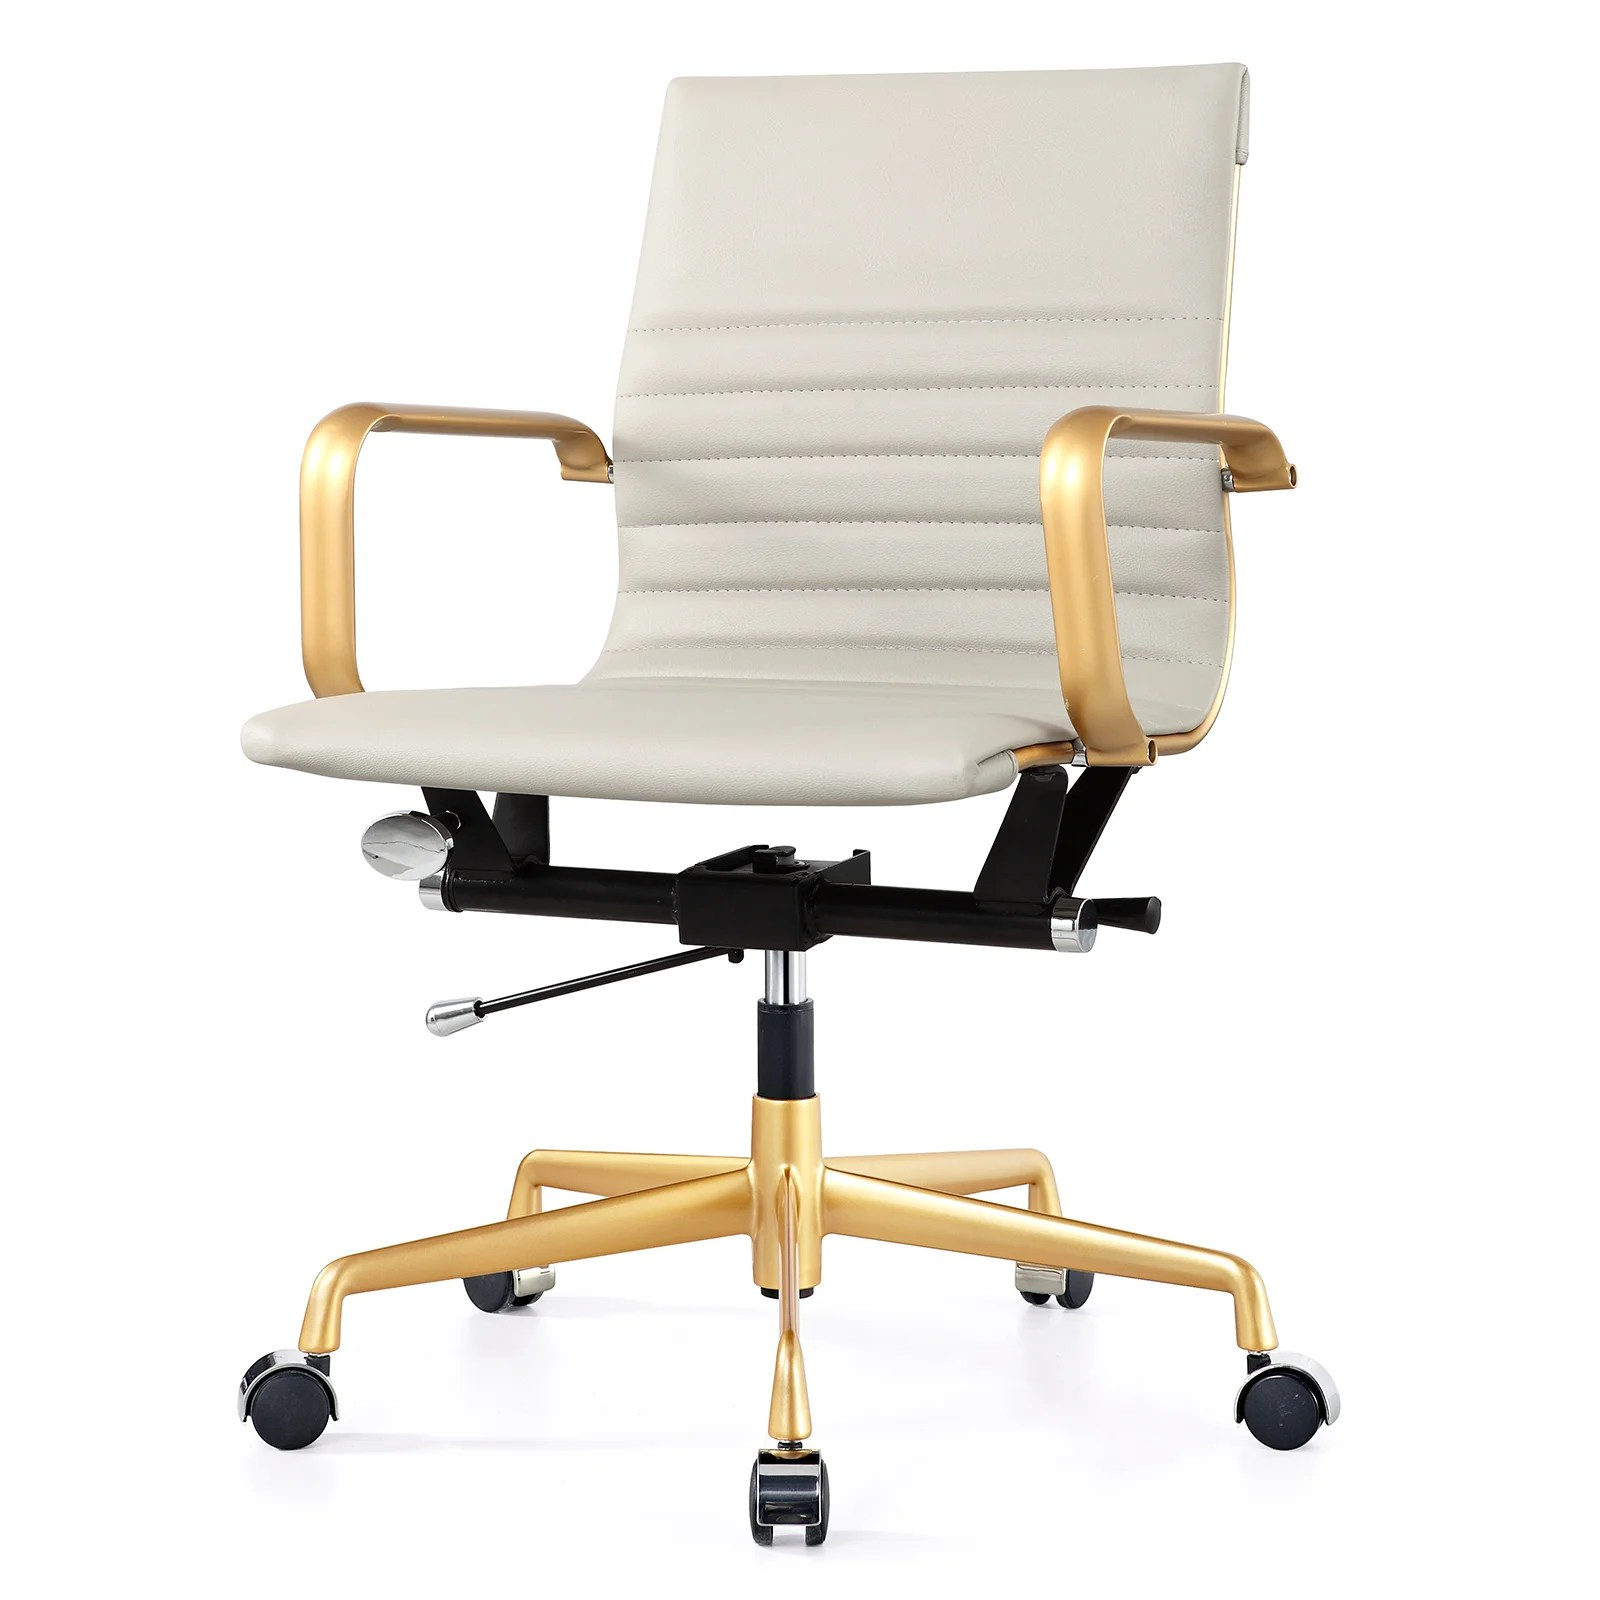 Office Chair With Arms Meelano Vegan Leather Mid Back Office Chair With Arms